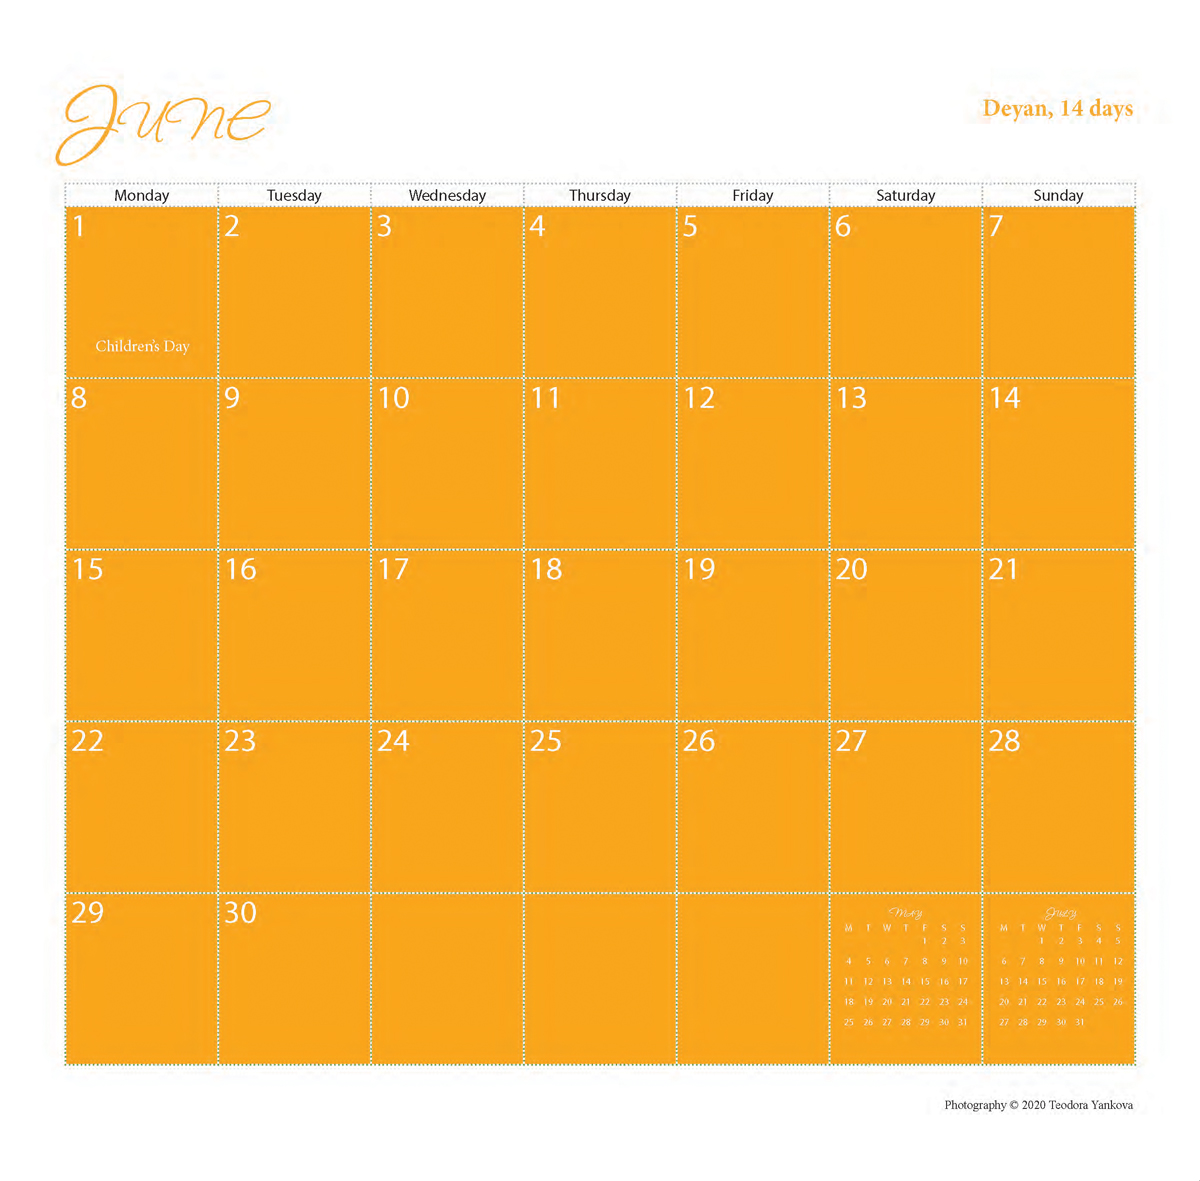 Pearl-in-the-Shell-Calendar-2020 (15)